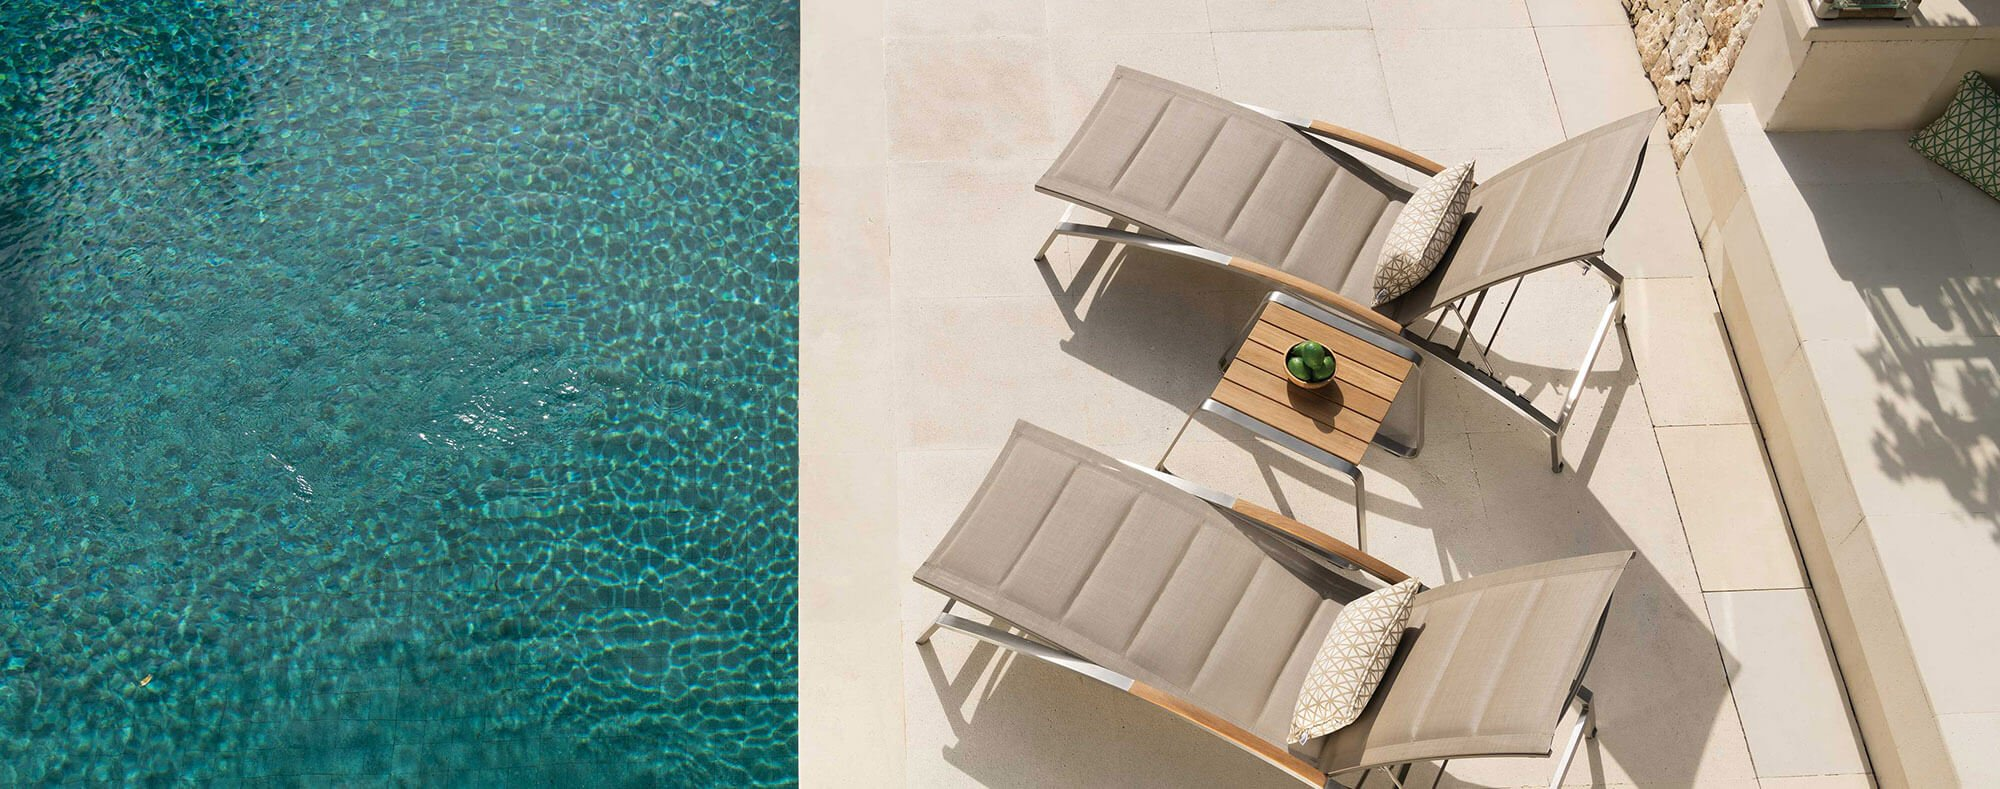 Plaza luxury sun lounger and coffee table